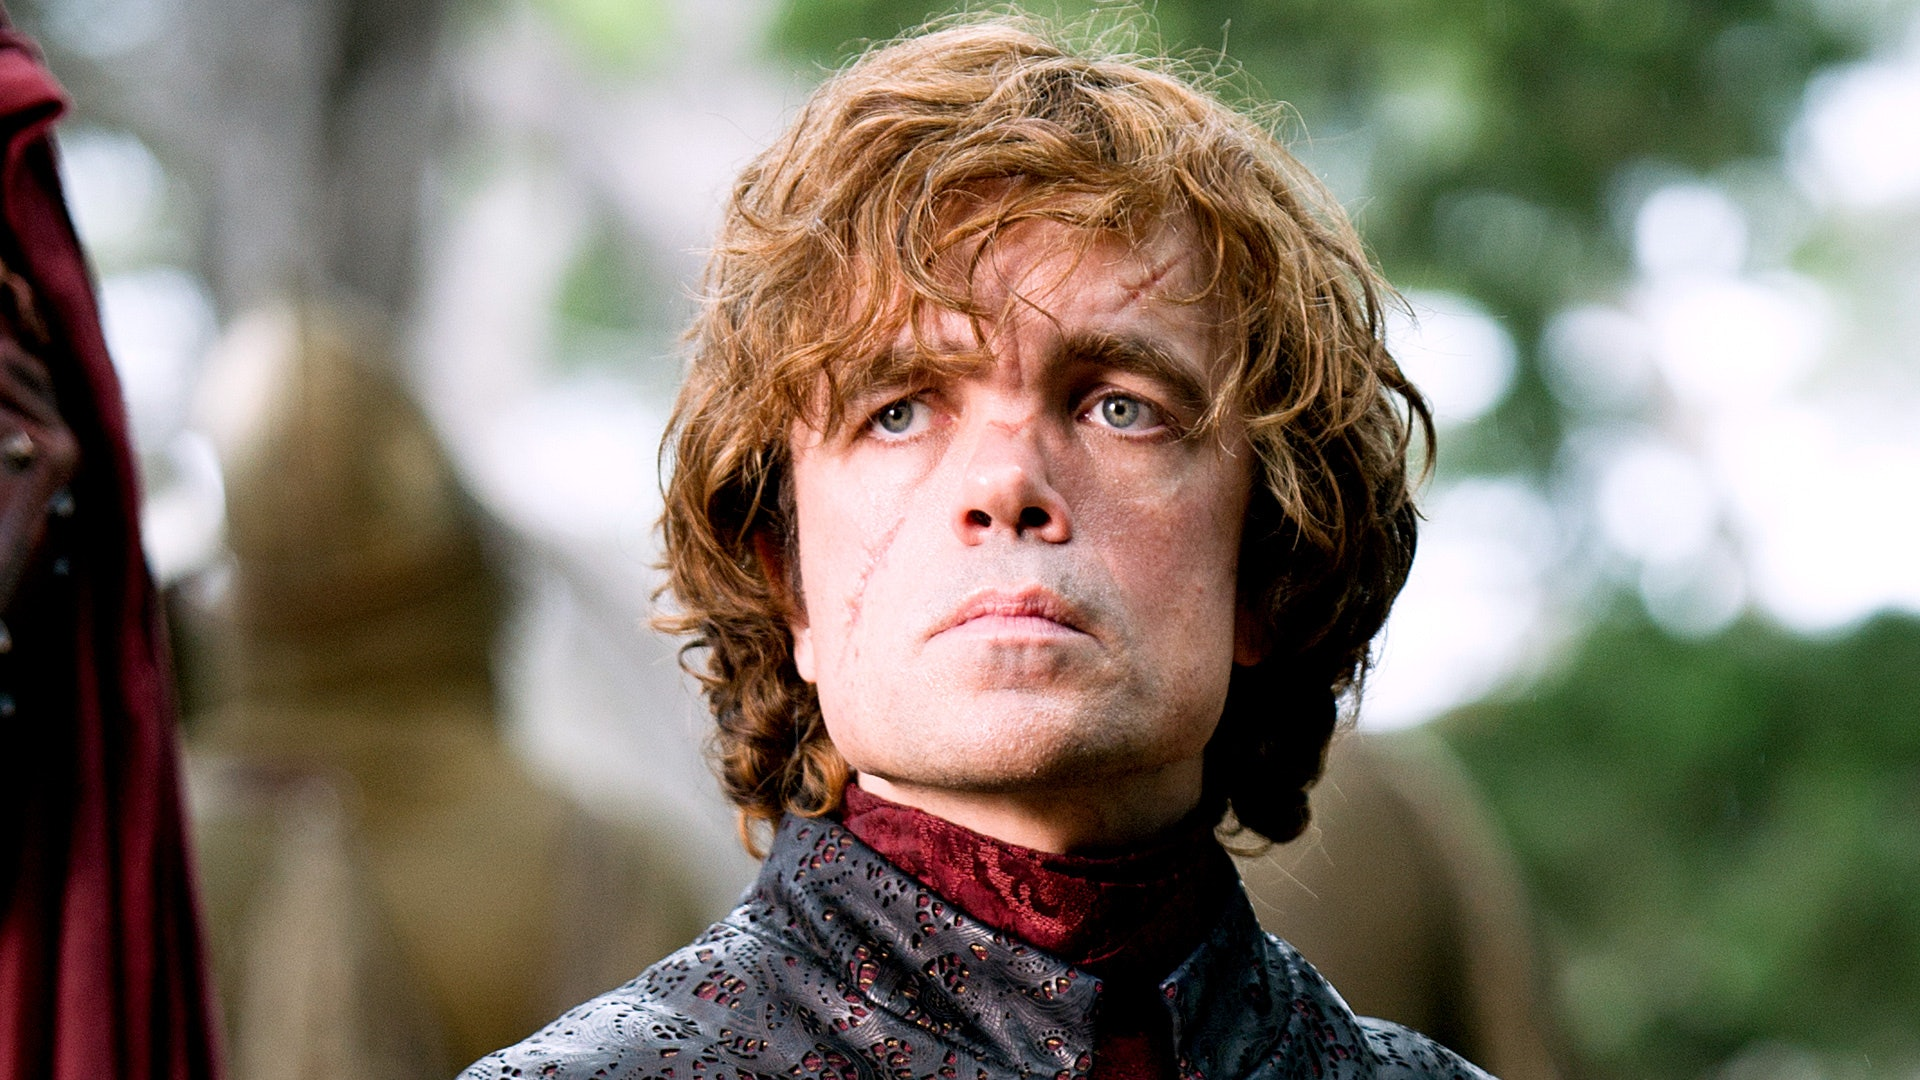 tyrion lannister theories for game of thrones season 6 prove he is in a big